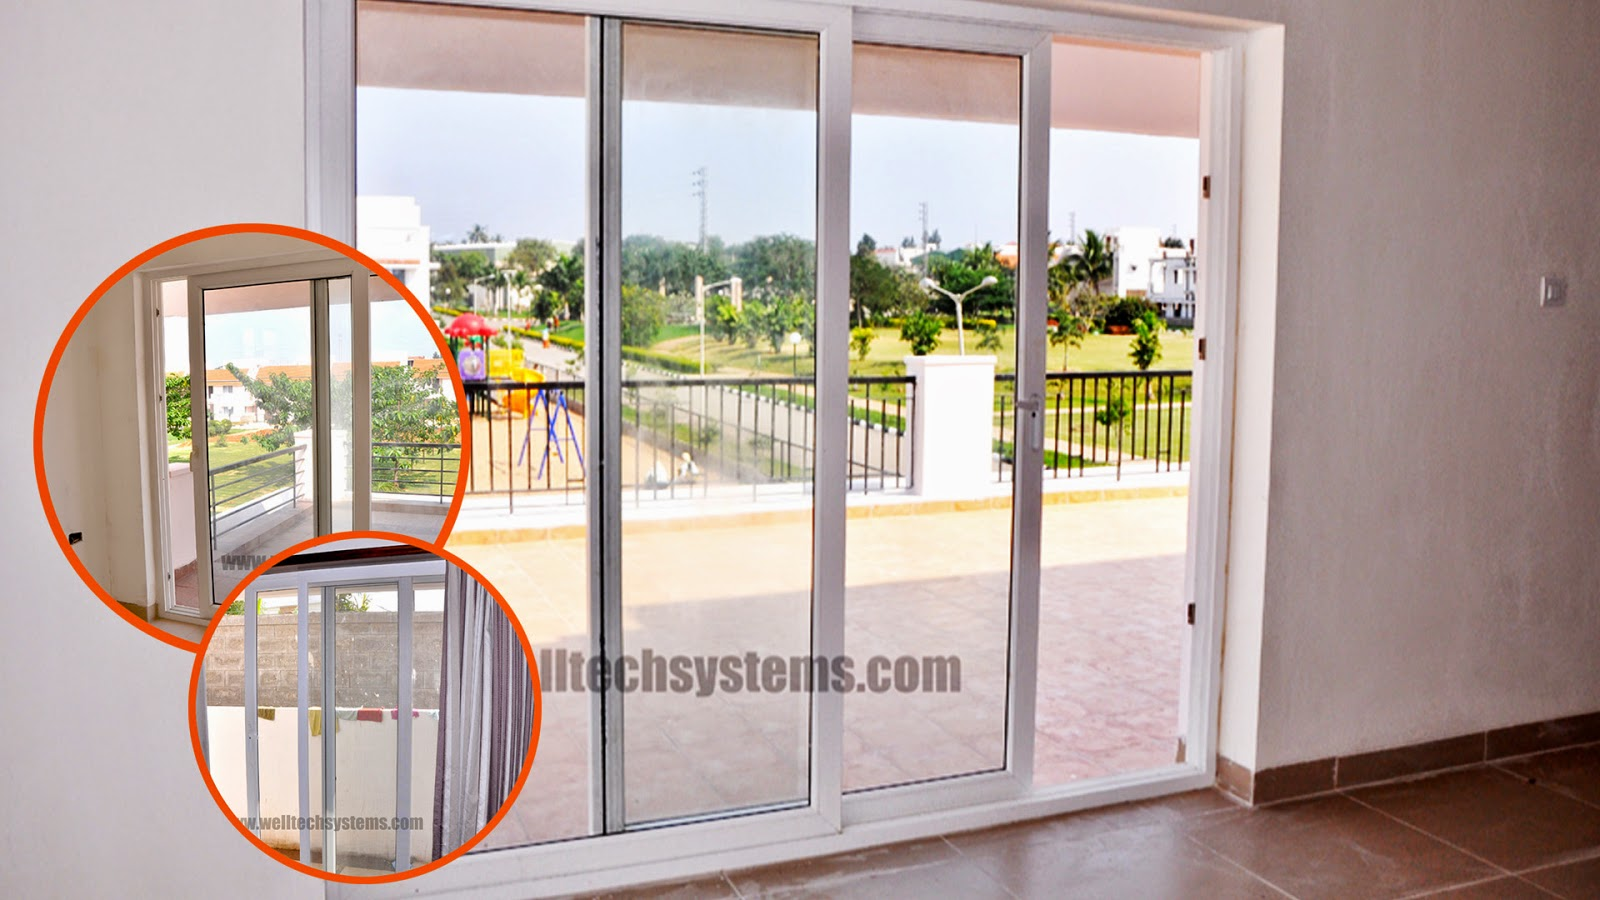 welltech upvcsliding window